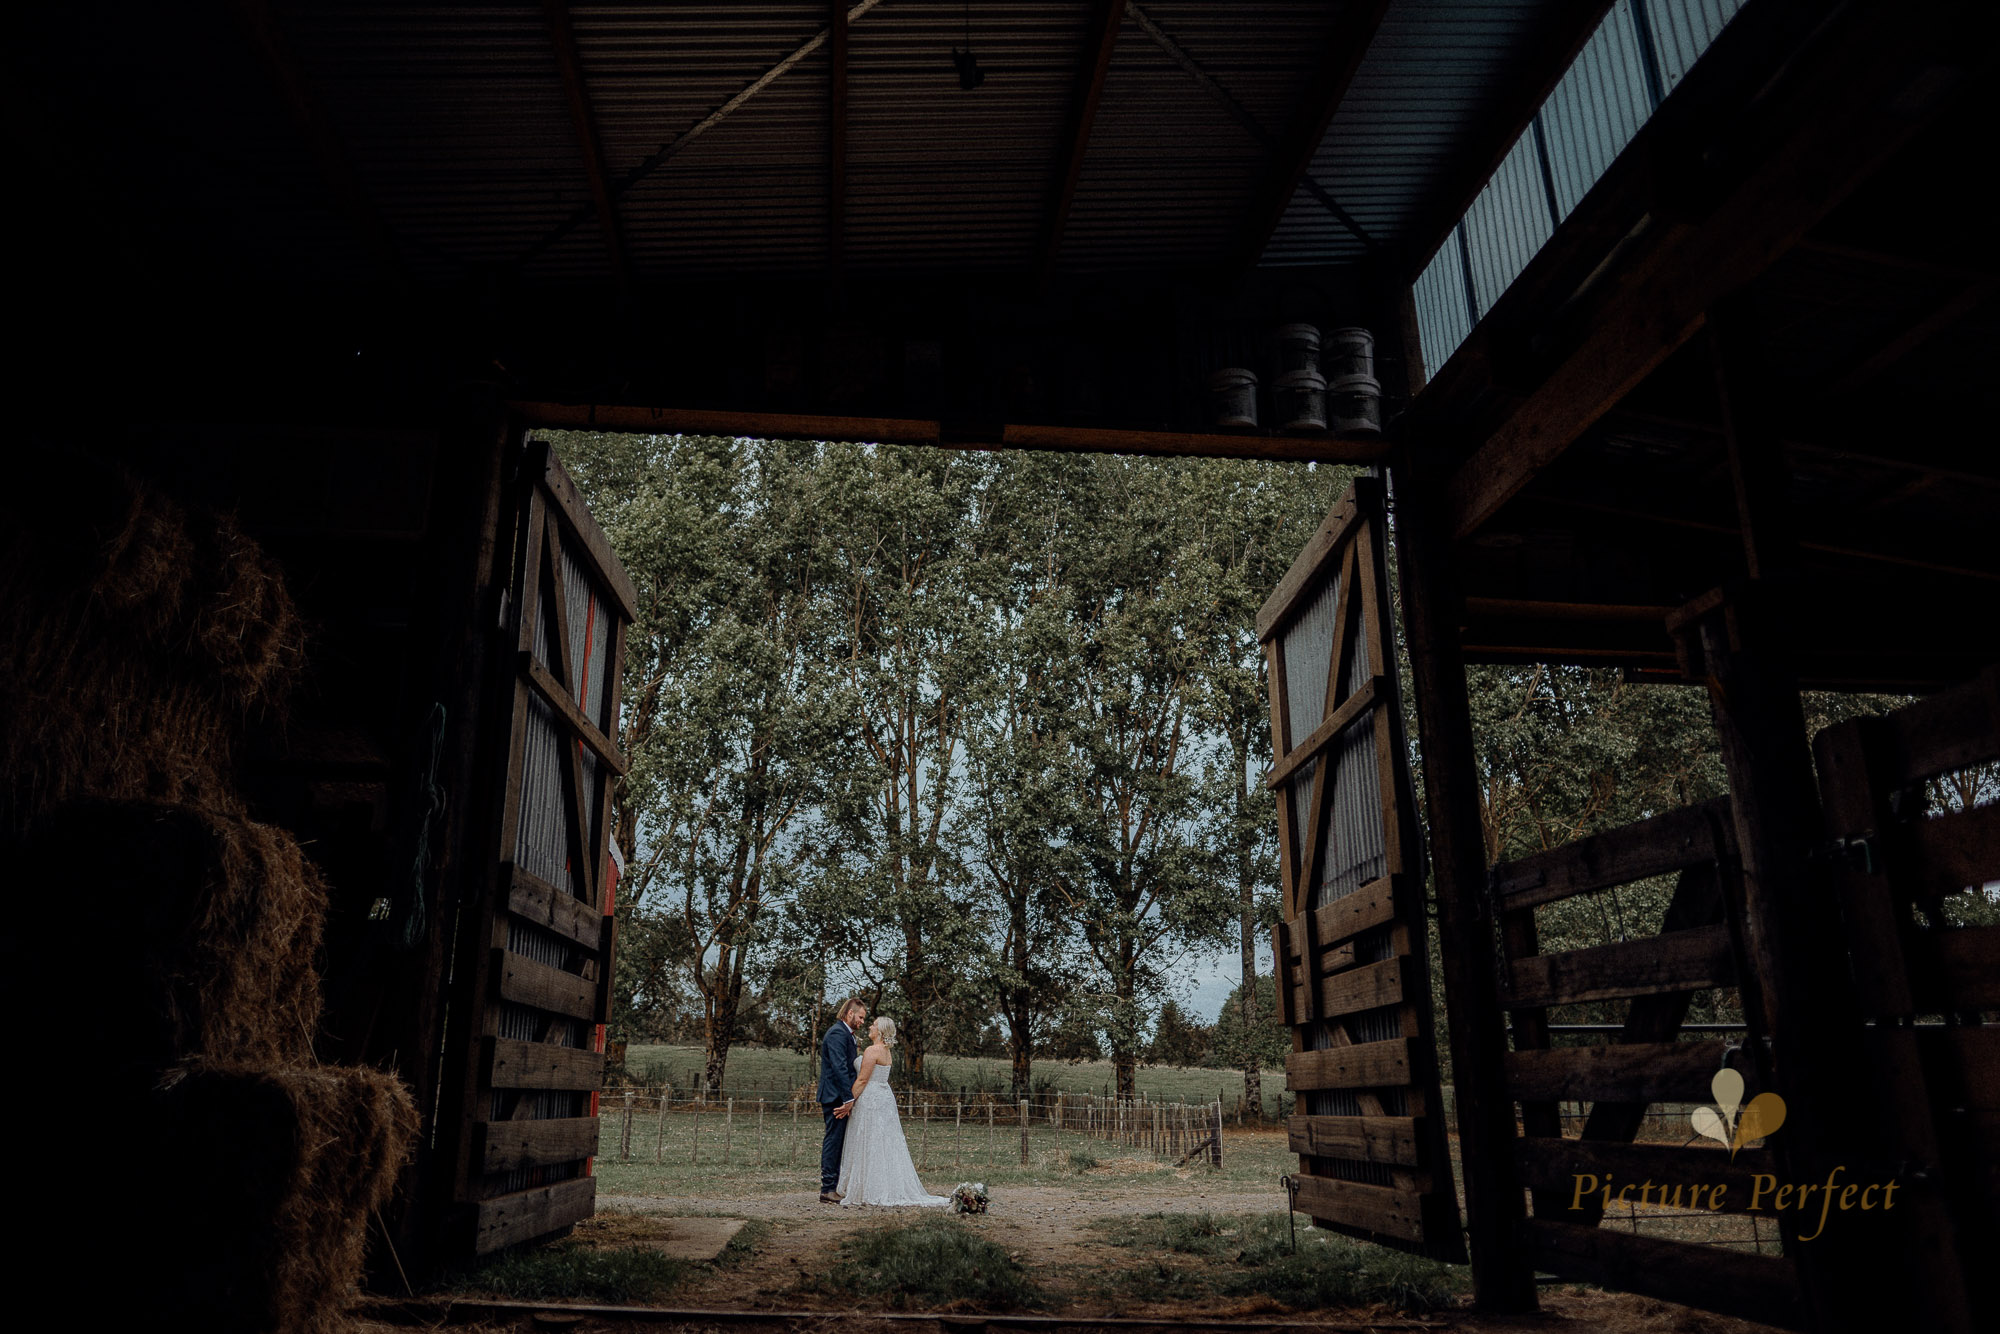 Wellington wedding photographer at a rustic farm wedding Monique